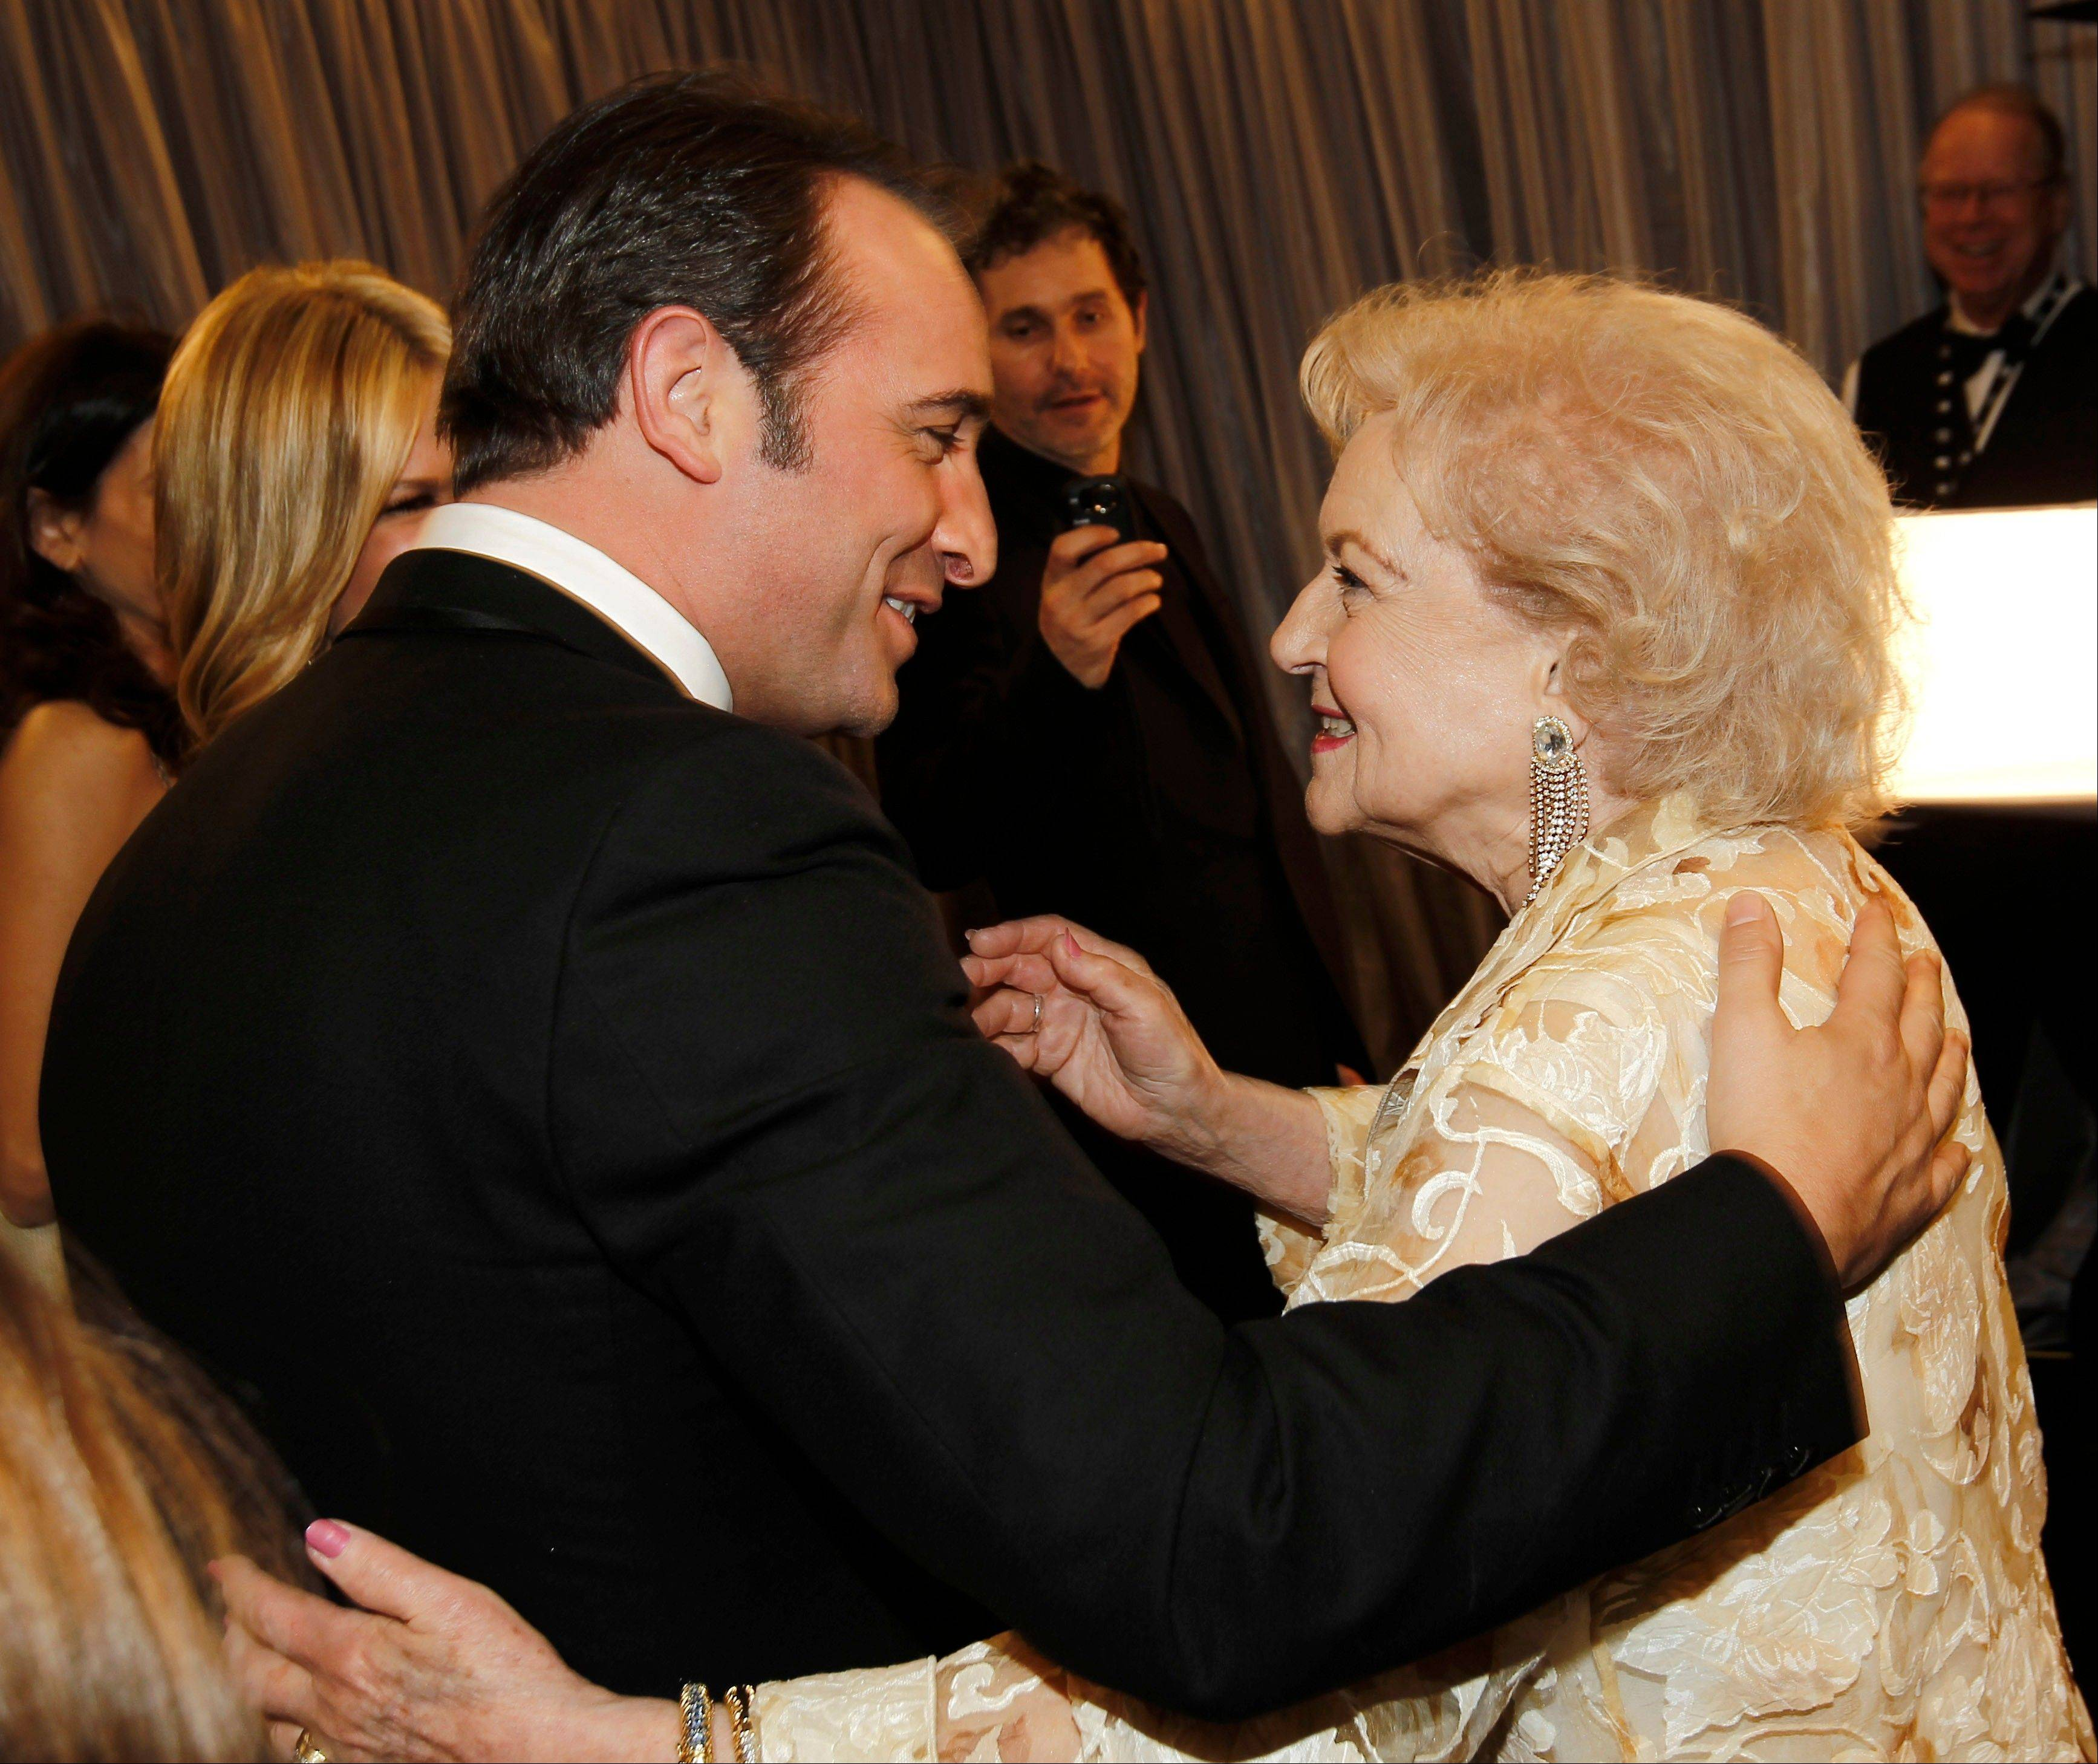 "ASSOCIATED PRESSJean Dujardin greets Betty White backstage after accepting their awards. Jean Dujardin won the award for outstanding performance by a male actor in a leading role for ""The Artist"" and Betty White won the award for outstanding performance by a female actor in a comedy series for ""Hot in Cleveland."""